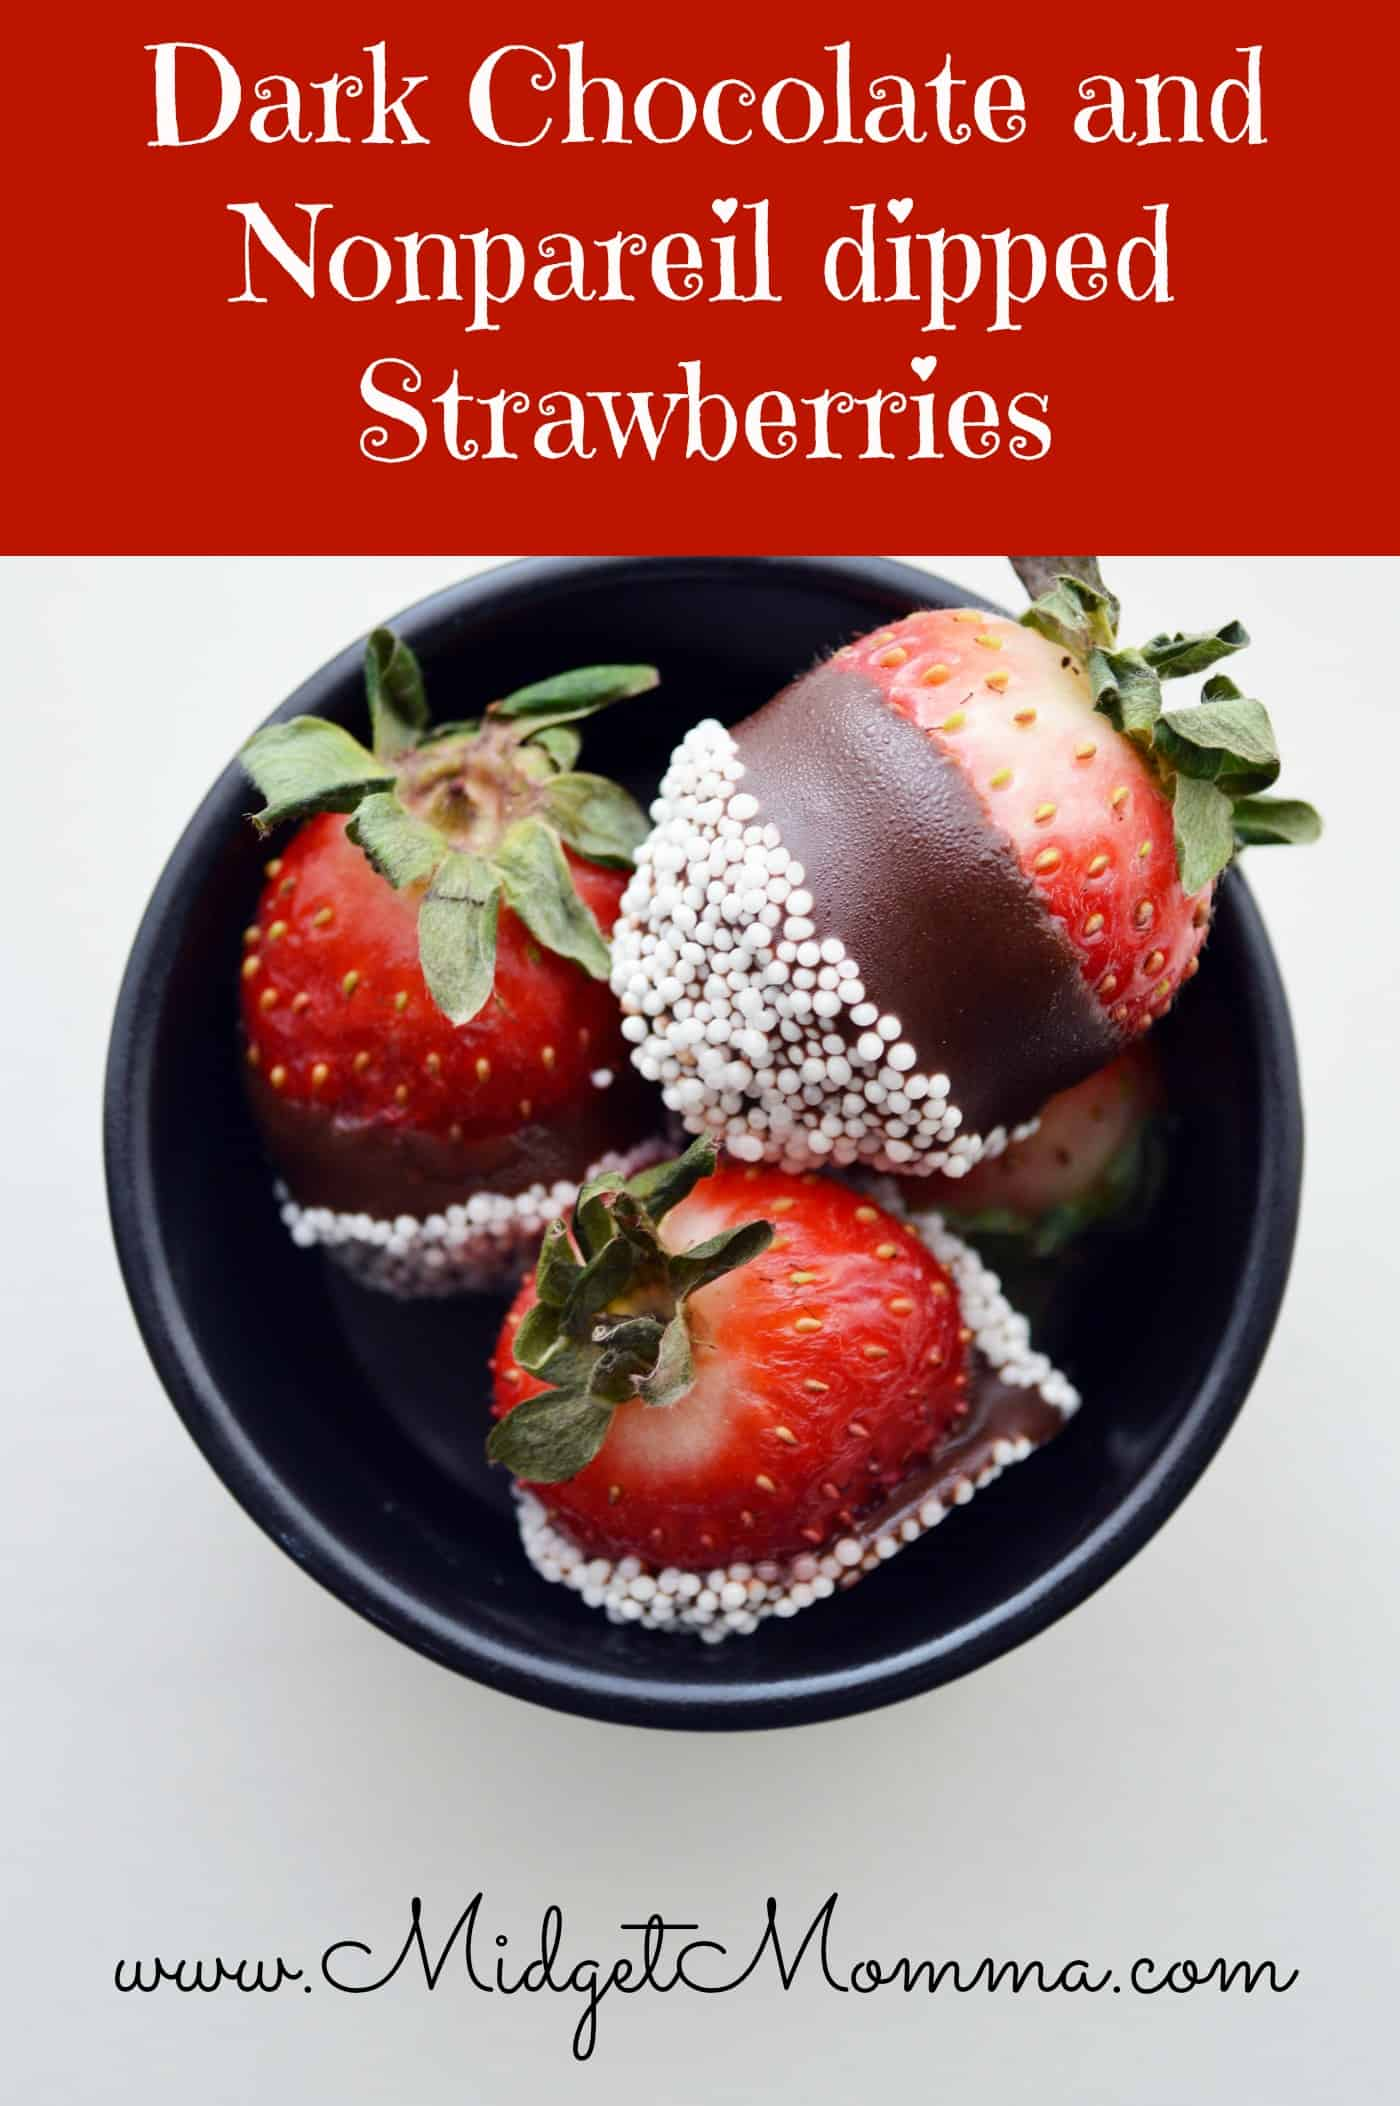 Dark Chocolate and Nonpareil dipped Strawberries Ingredients: